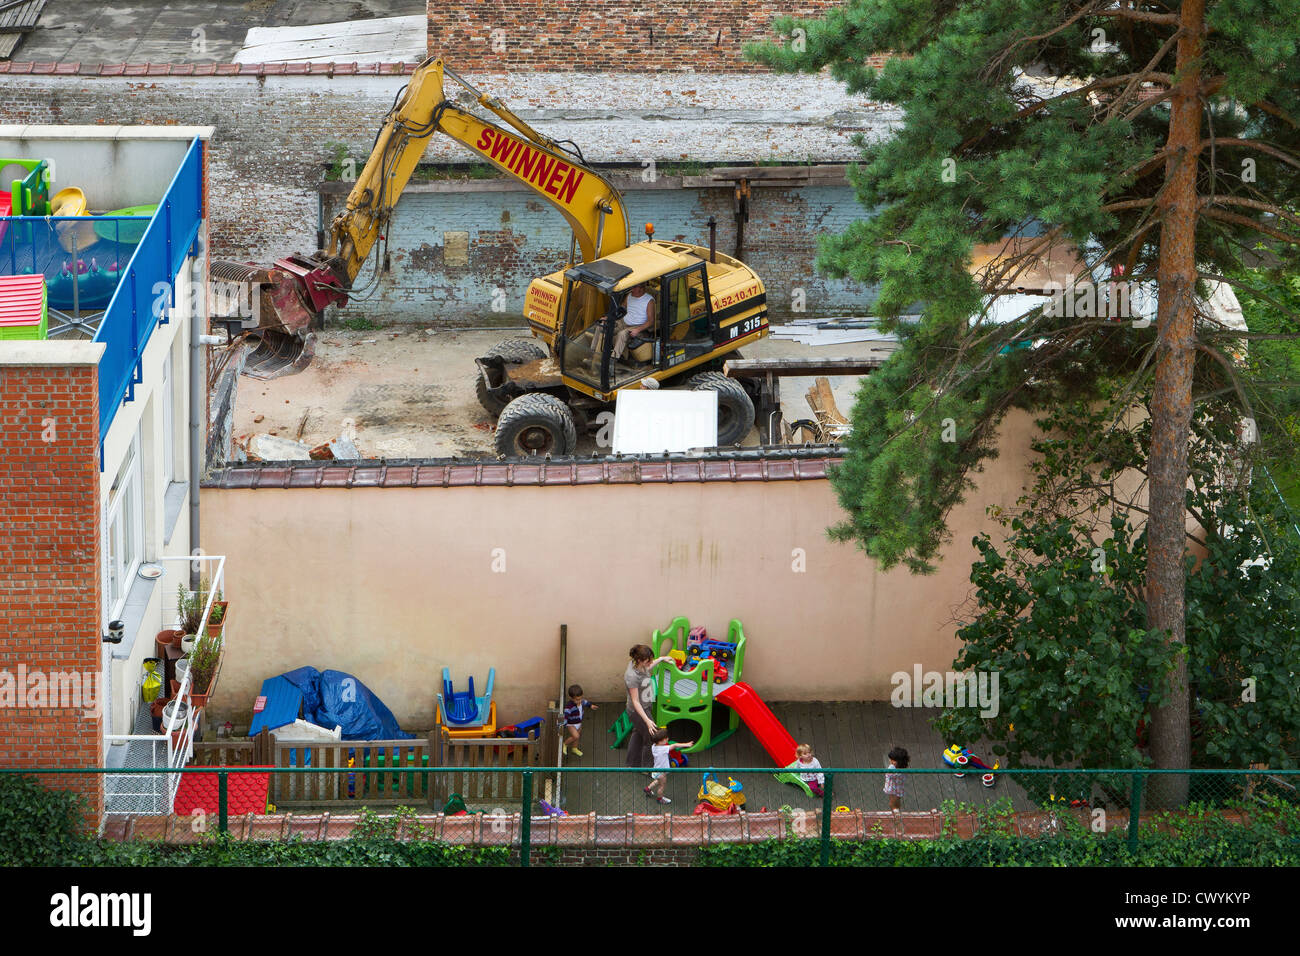 demolition next to creche danger hazard children - Stock Image